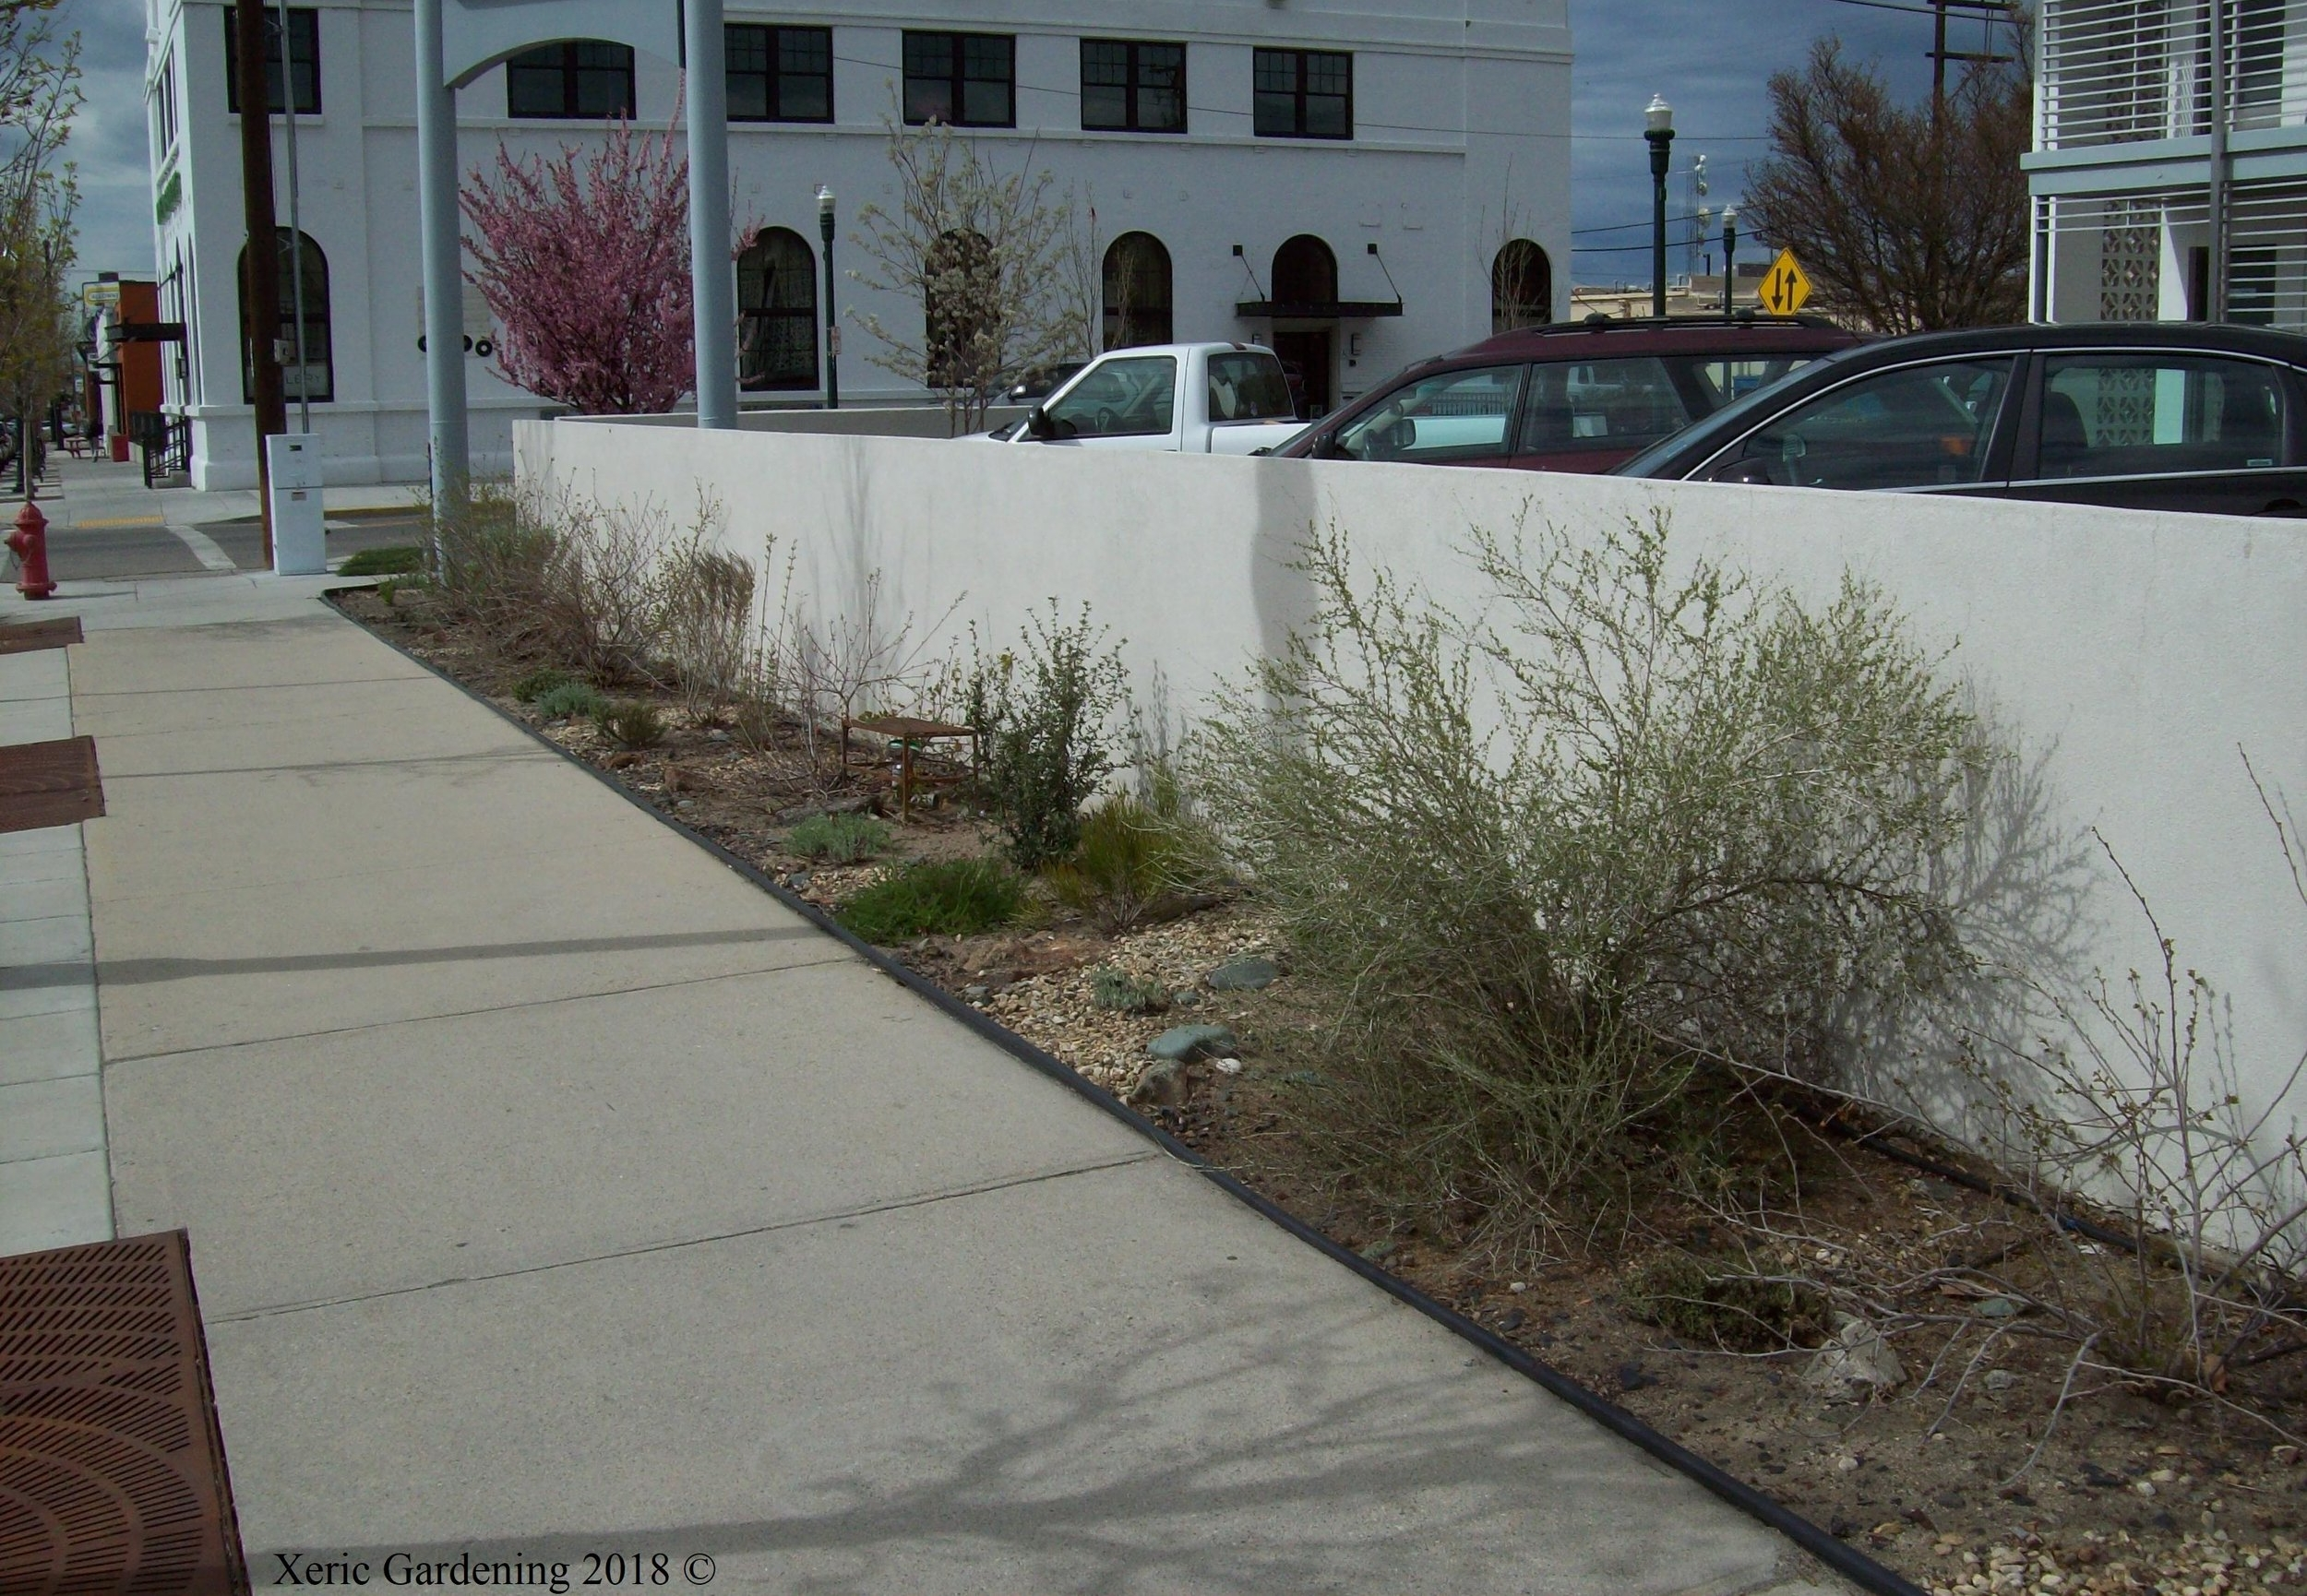 - This commercial building had a south-facing hell strip and a wall, which increased the oven effect, but made it possible to put in taller shrubs, too. We have combined shrubs with flowering perennials to give color and height throughout the year.